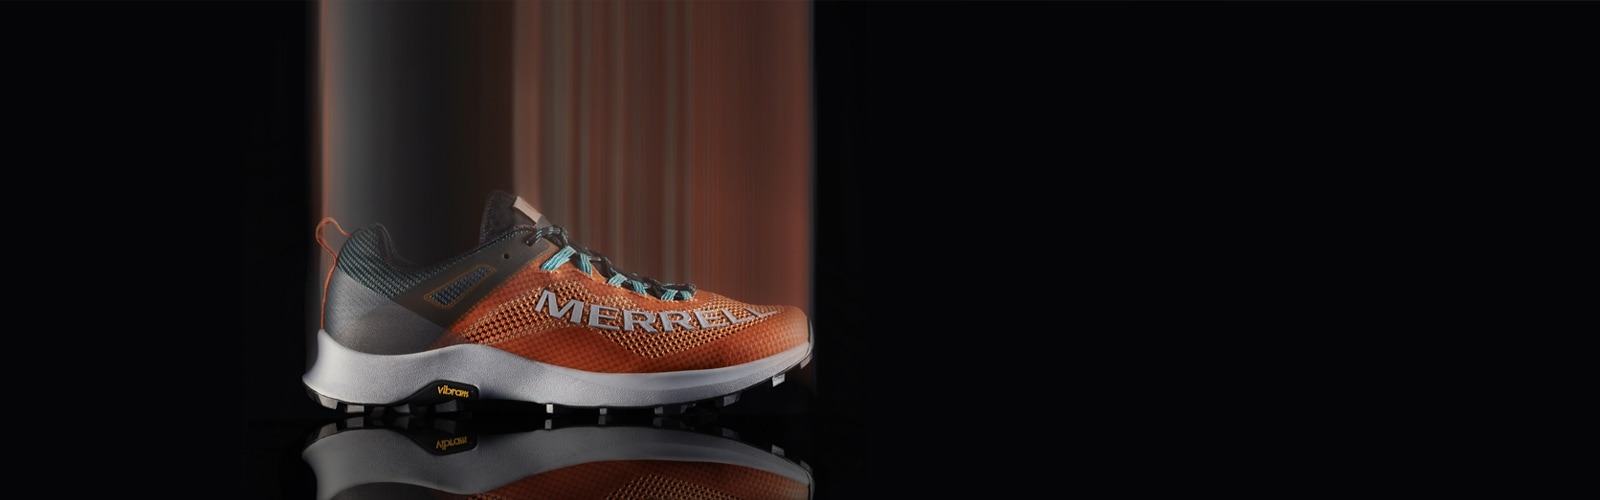 Merrell Long Sky Shoe blurred over a black background